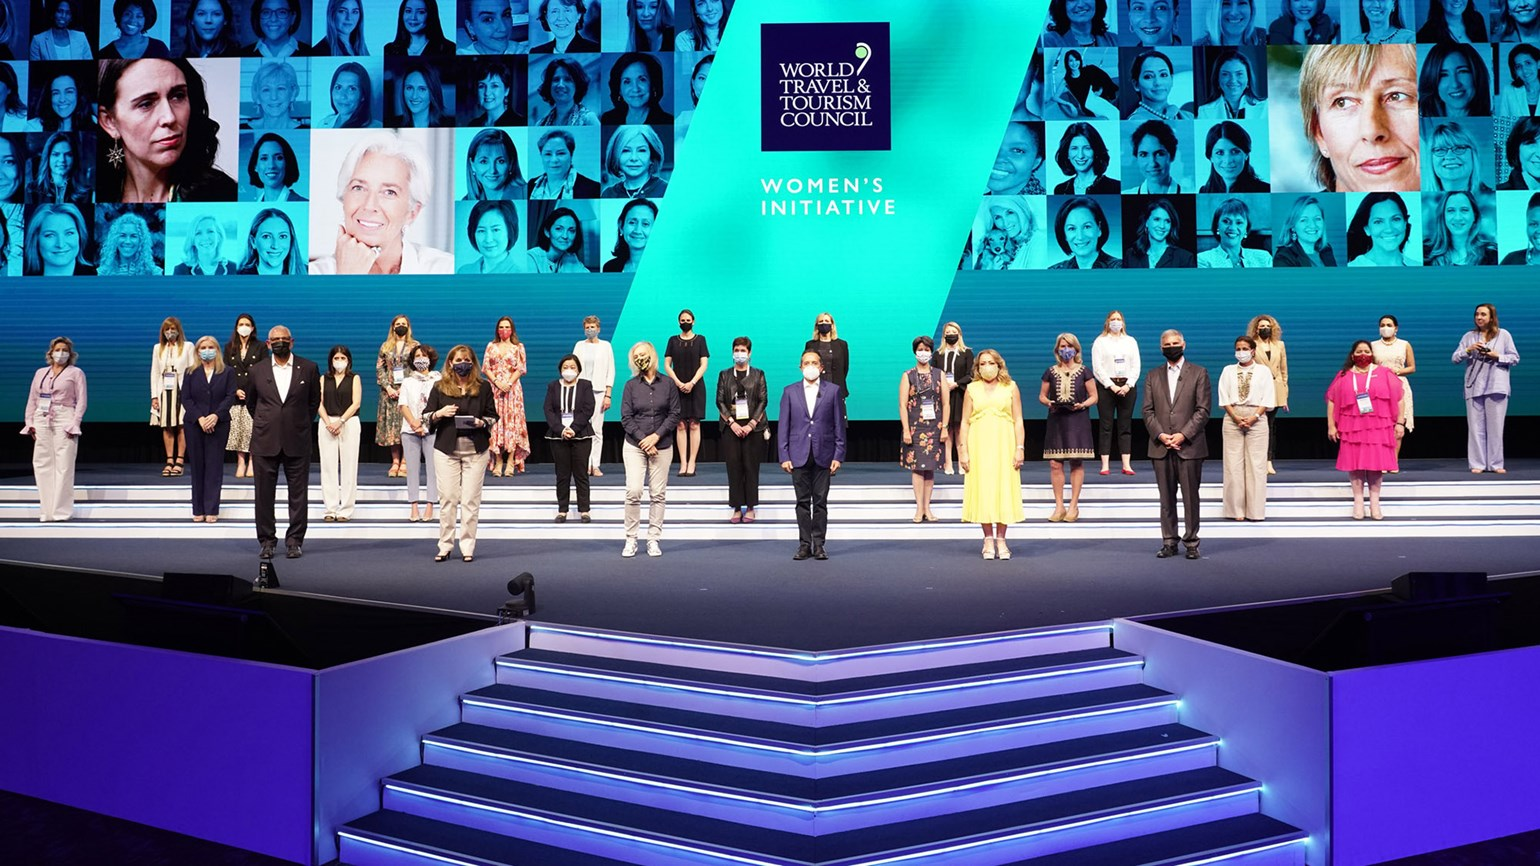 WTTC Summit closes with a commitment to empower women in travel